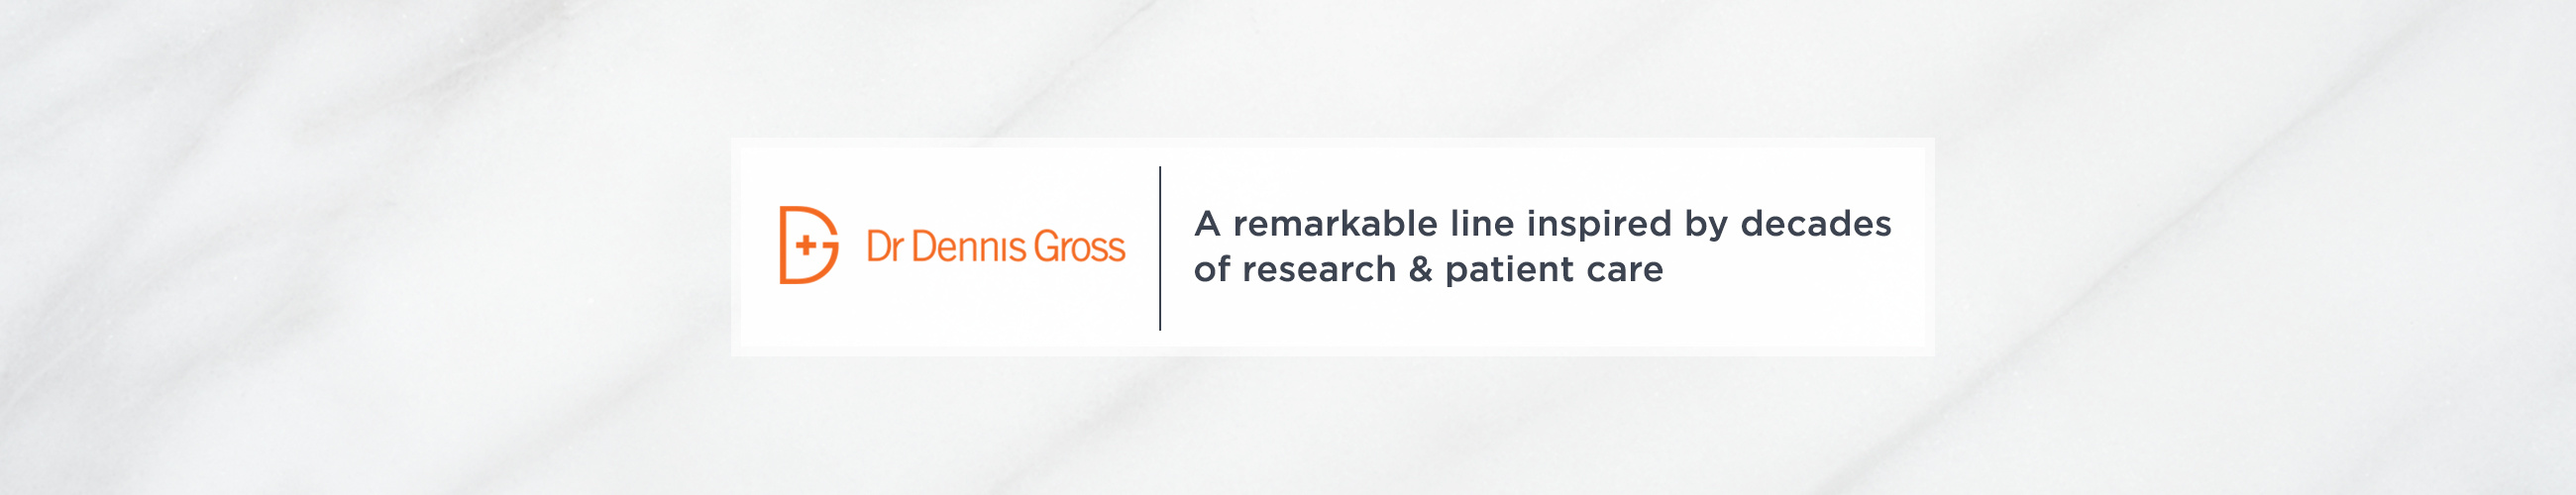 Dr. Dennis Gross,  A remarkable line inspired by decades of research & patient care